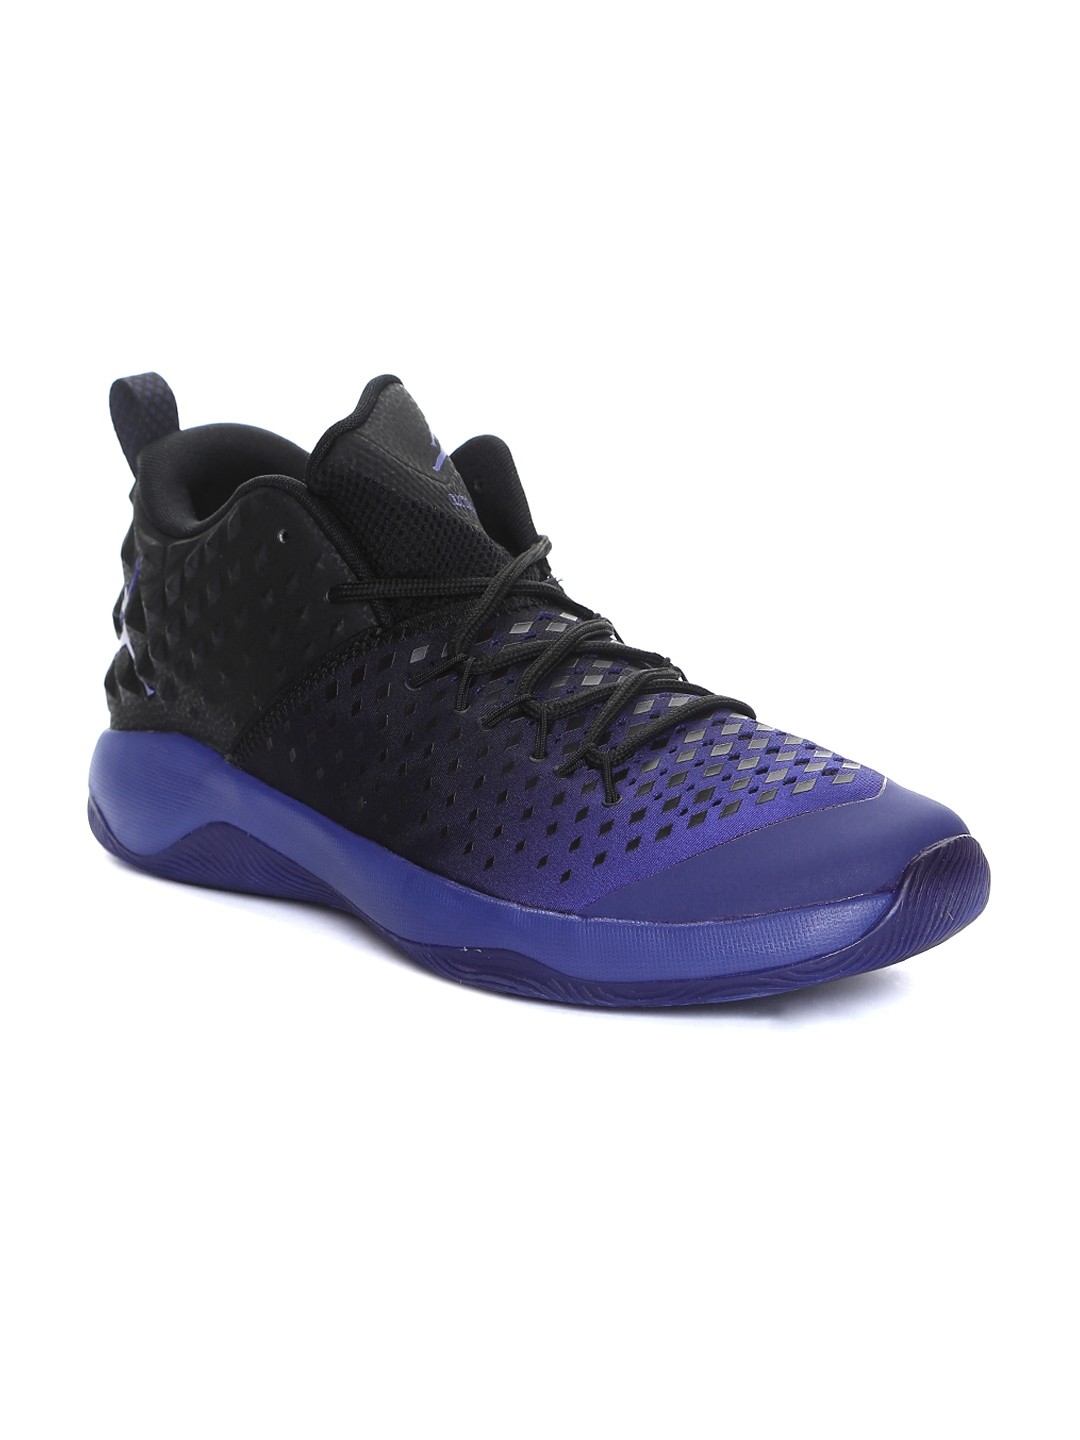 online retailer 94435 db9d9 Nike Men Black   Purple Jordan Extra Fly Mid-Top Basketball Shoes